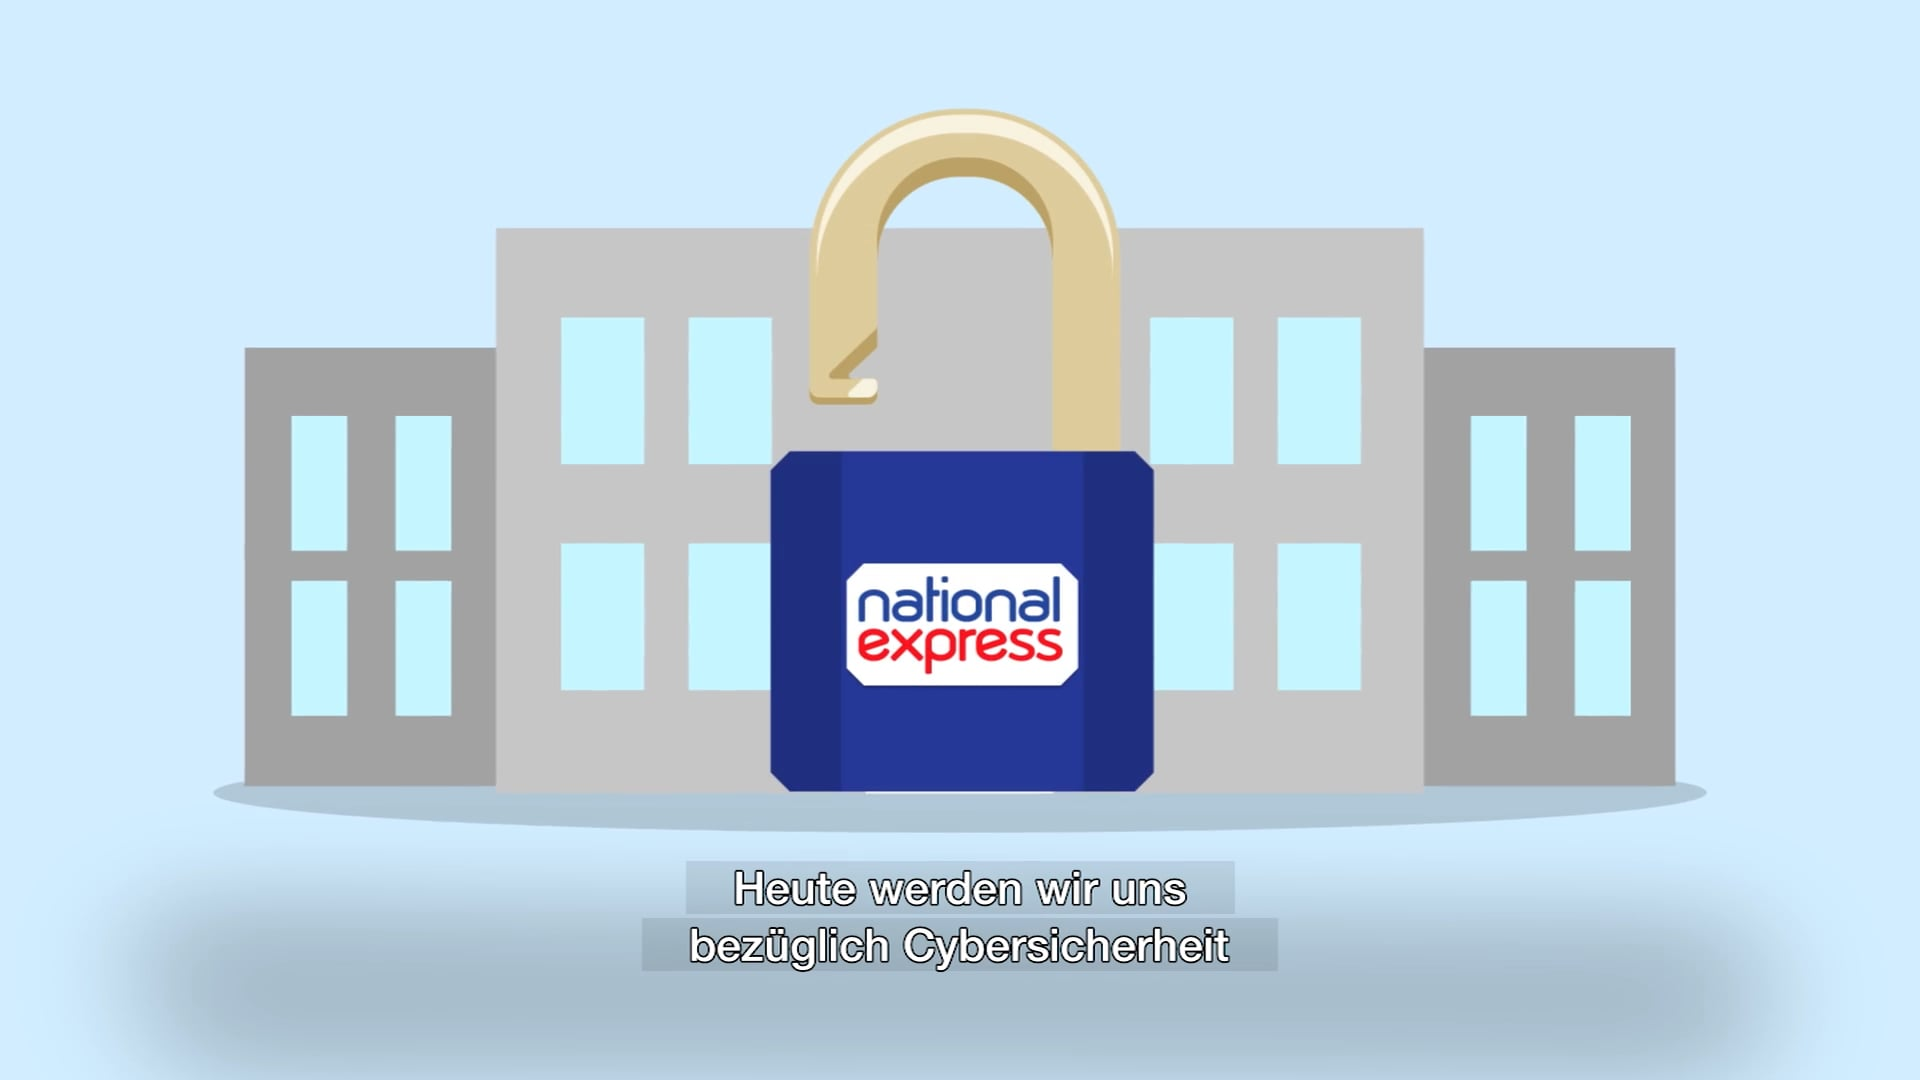 National Express - Cyber Security - GERMAN - Company Internal Use Video